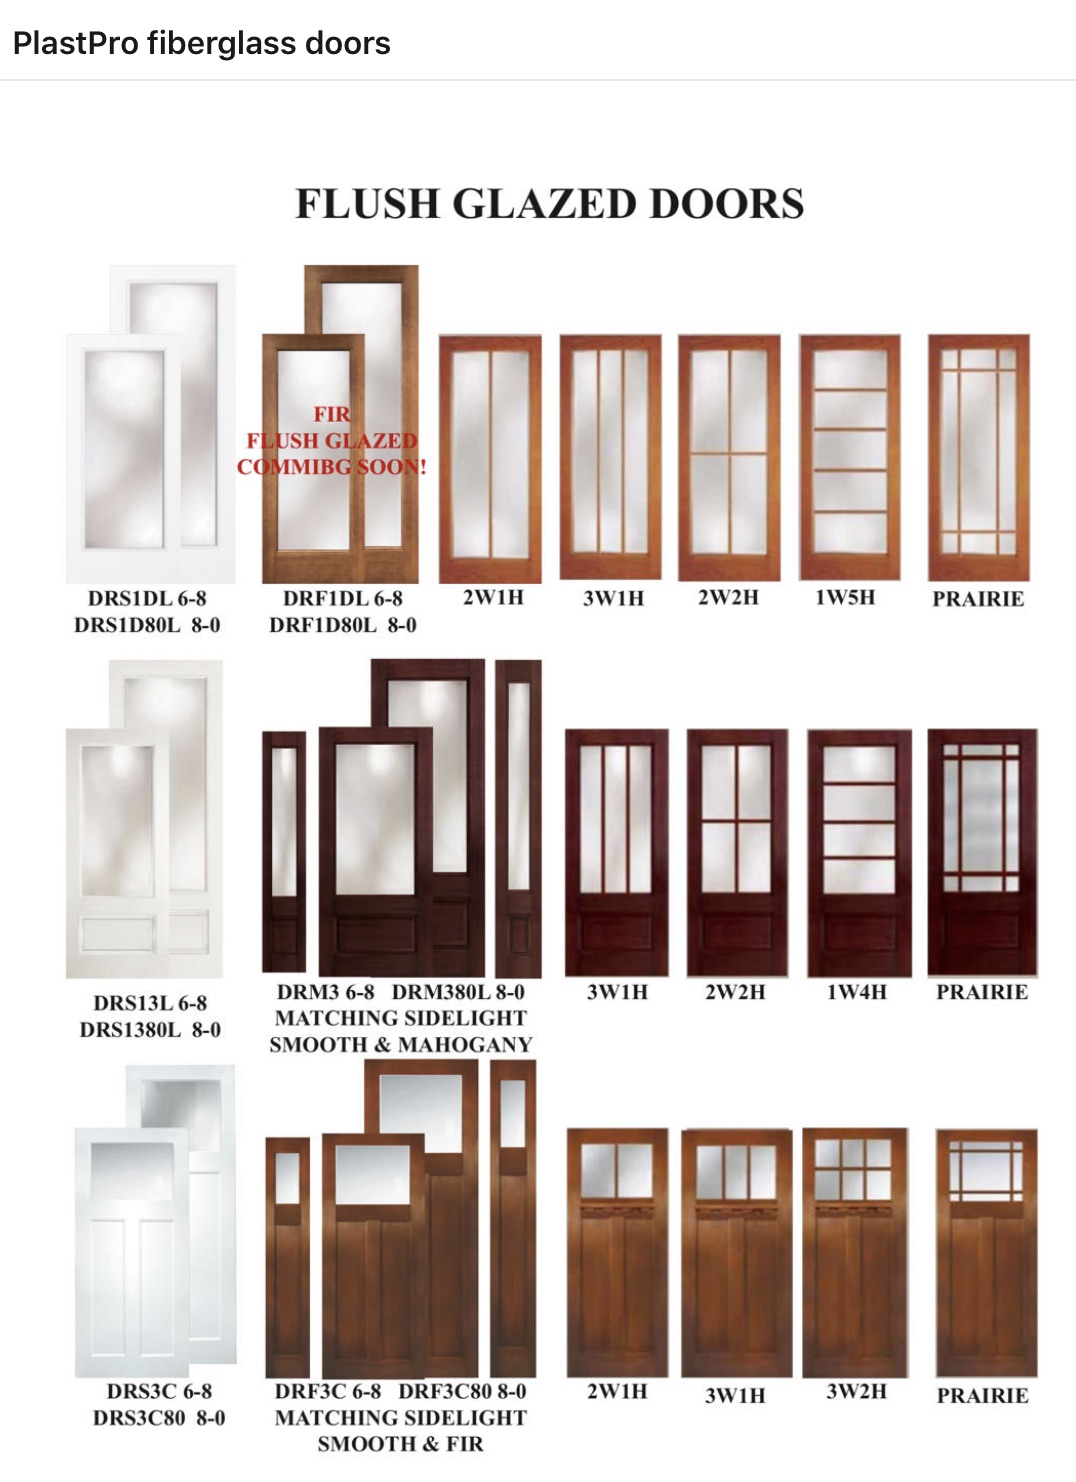 Flush Glazed Doors